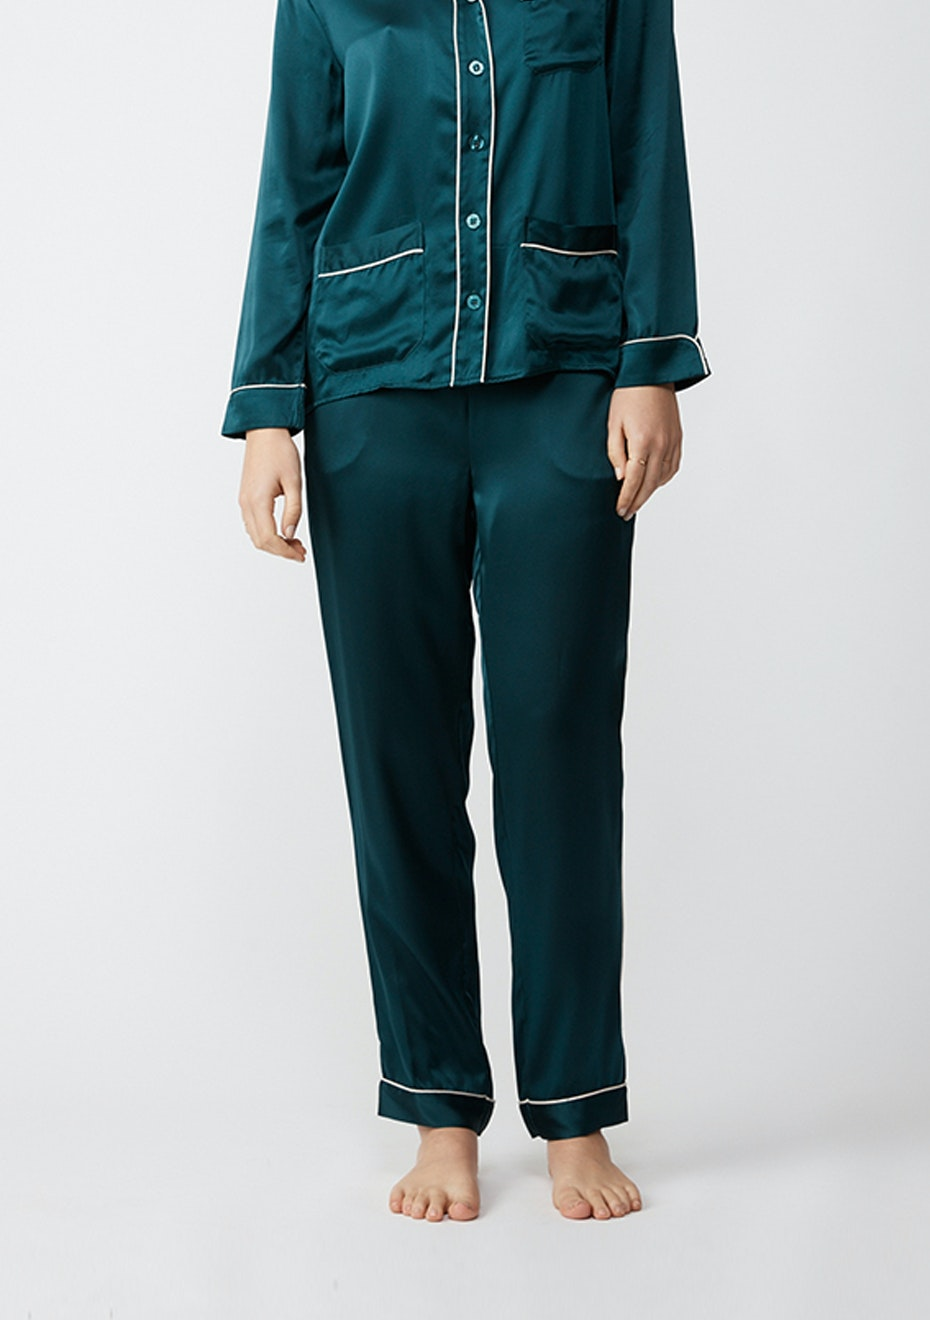 NATALIJA - Silk Pj Pants - Emerald